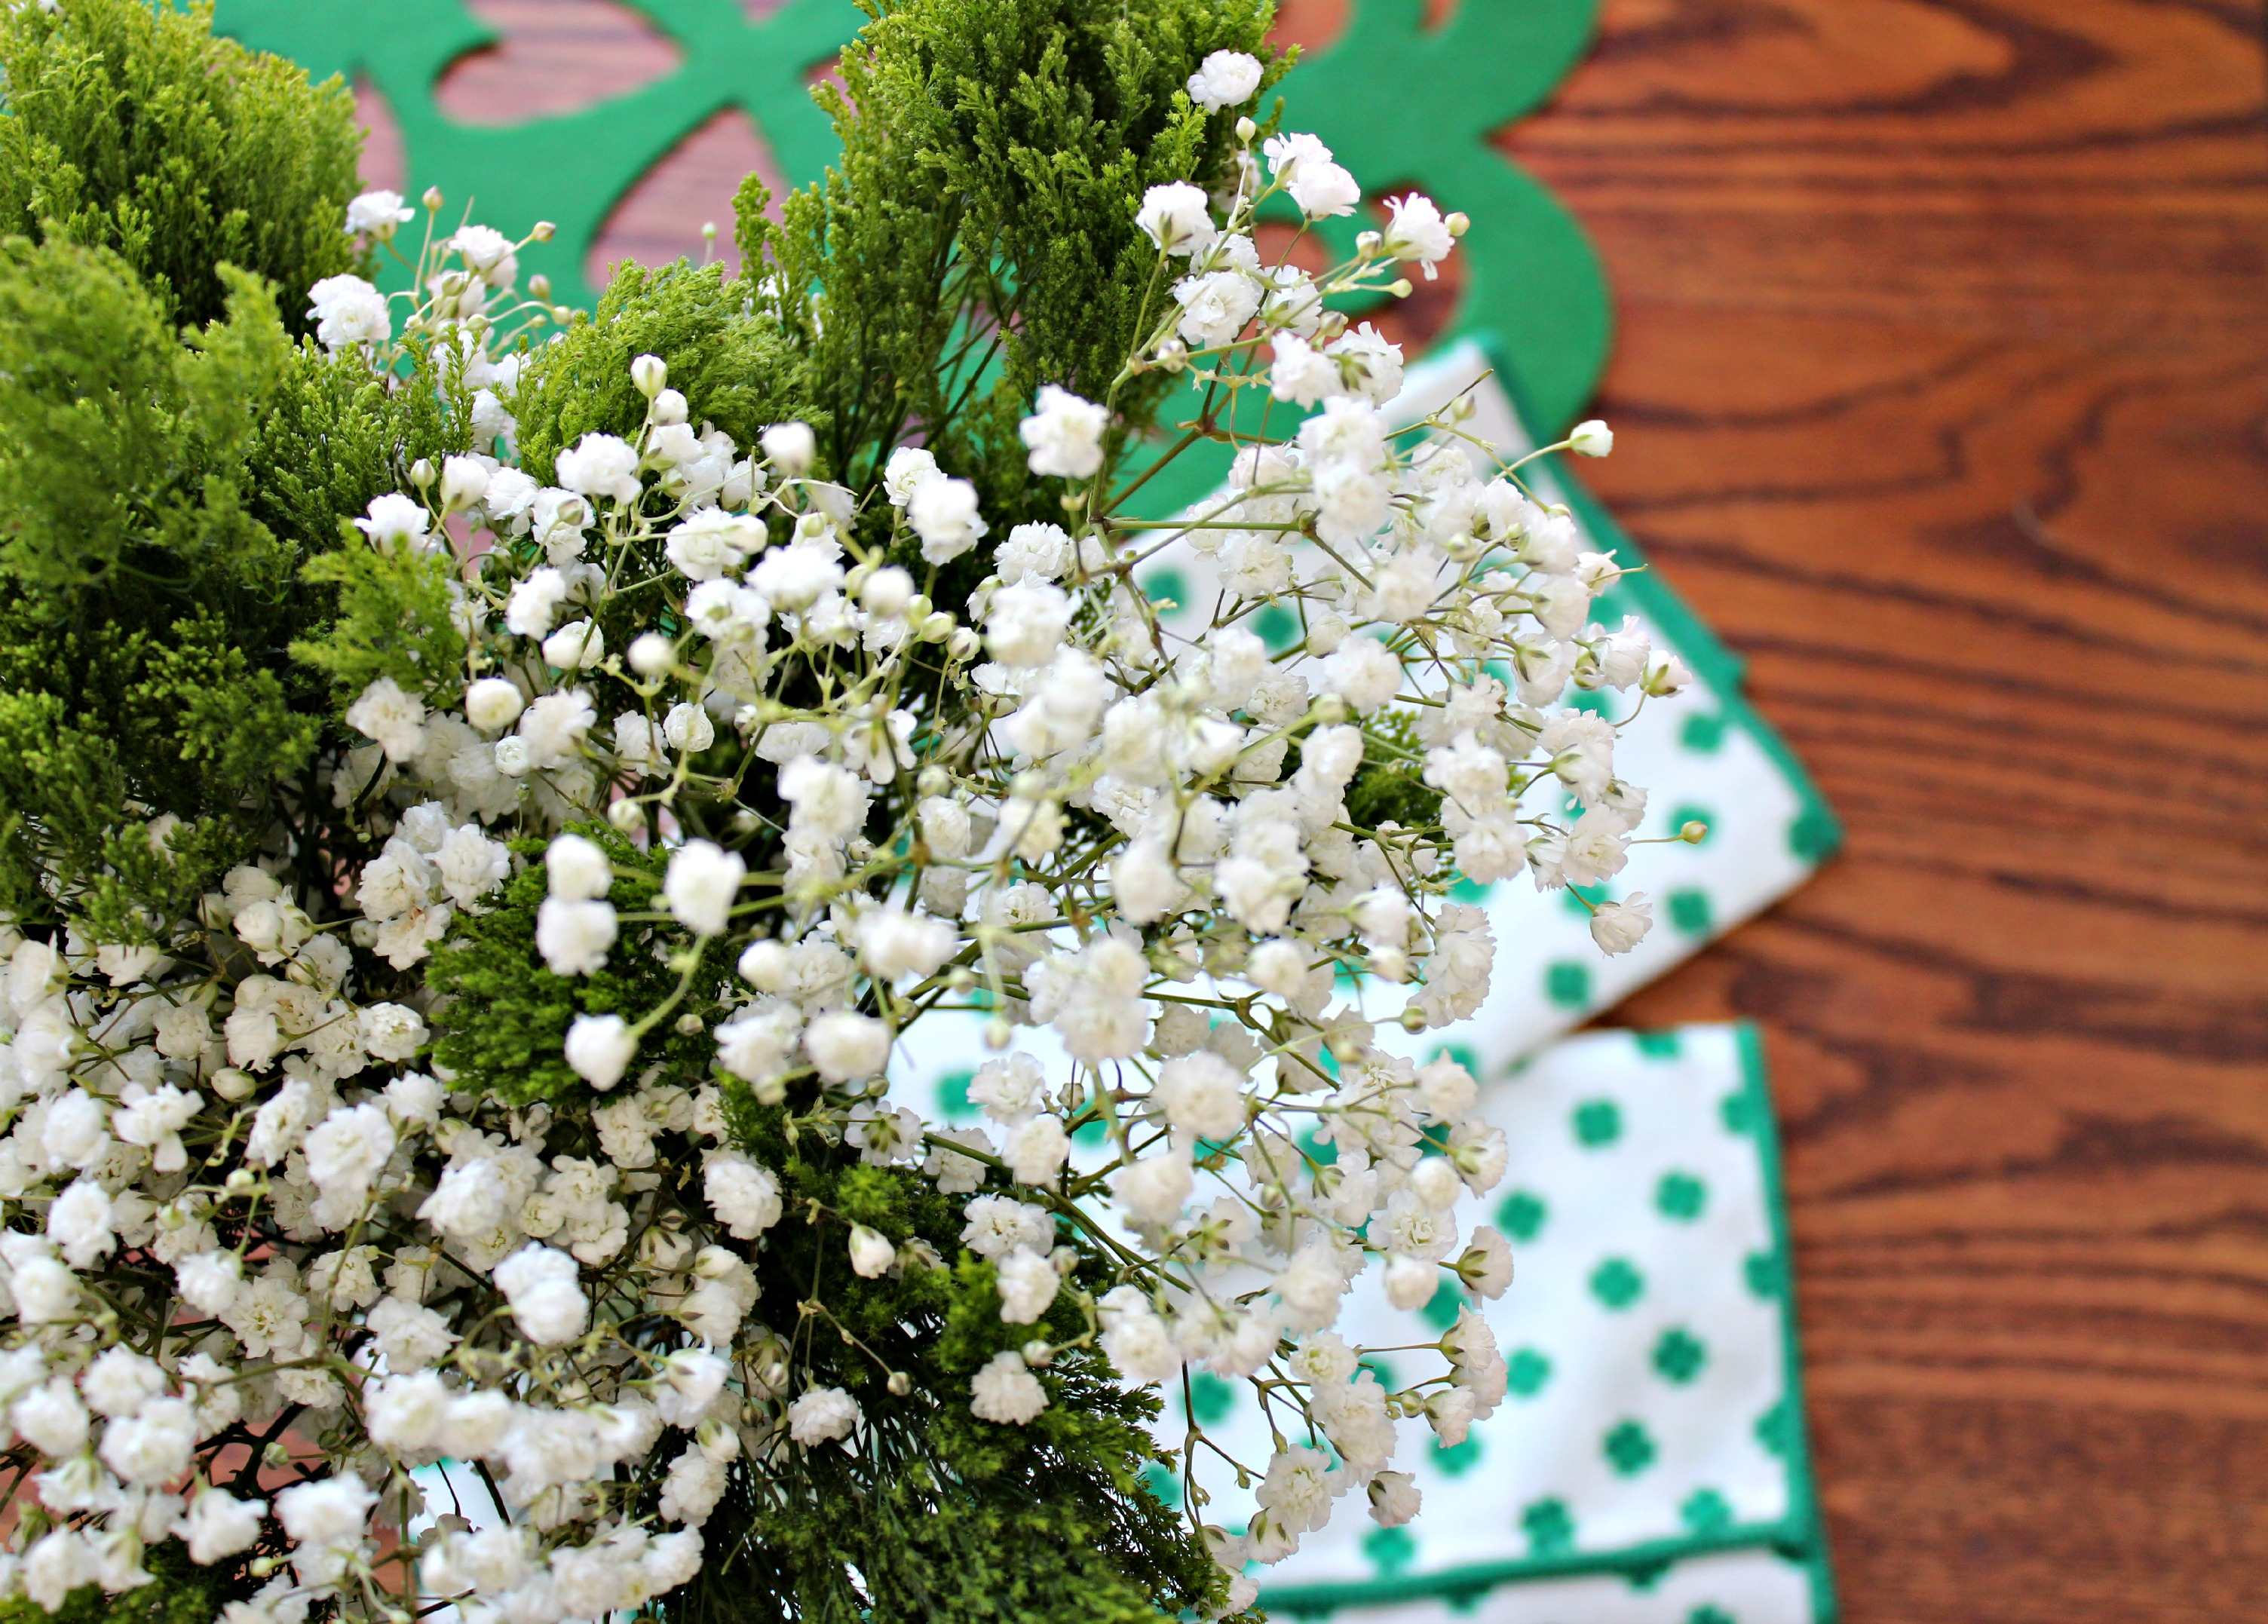 Table Decorations for St. Patrick's Day